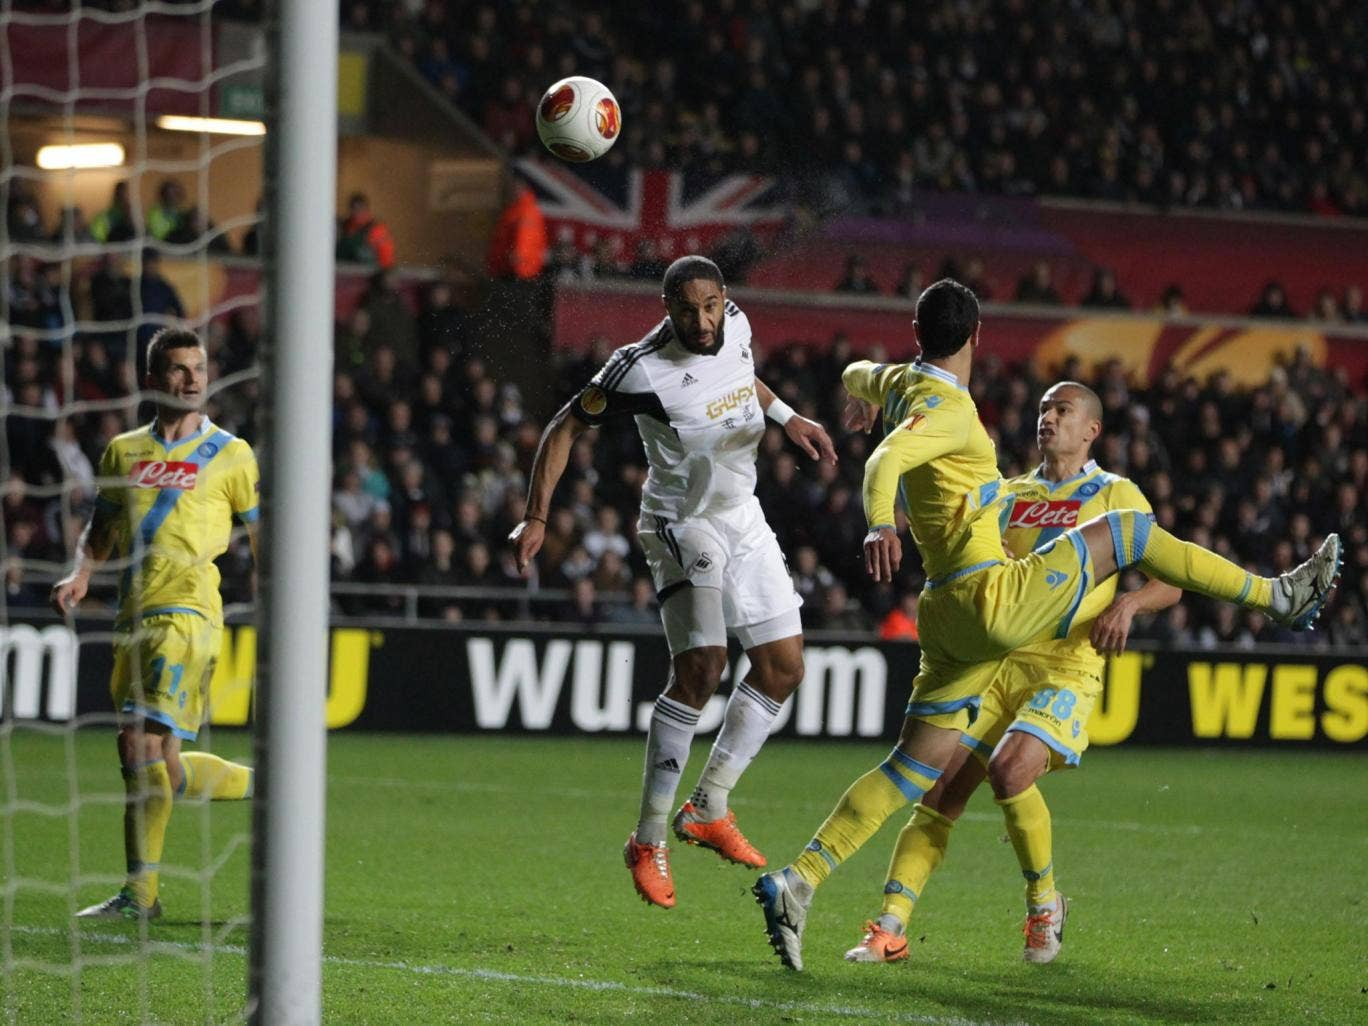 Swansea City's Ashley Williams header is saved by Napoli goalkeeper Pepe Reina (out of shot) during the UEFA Europa League